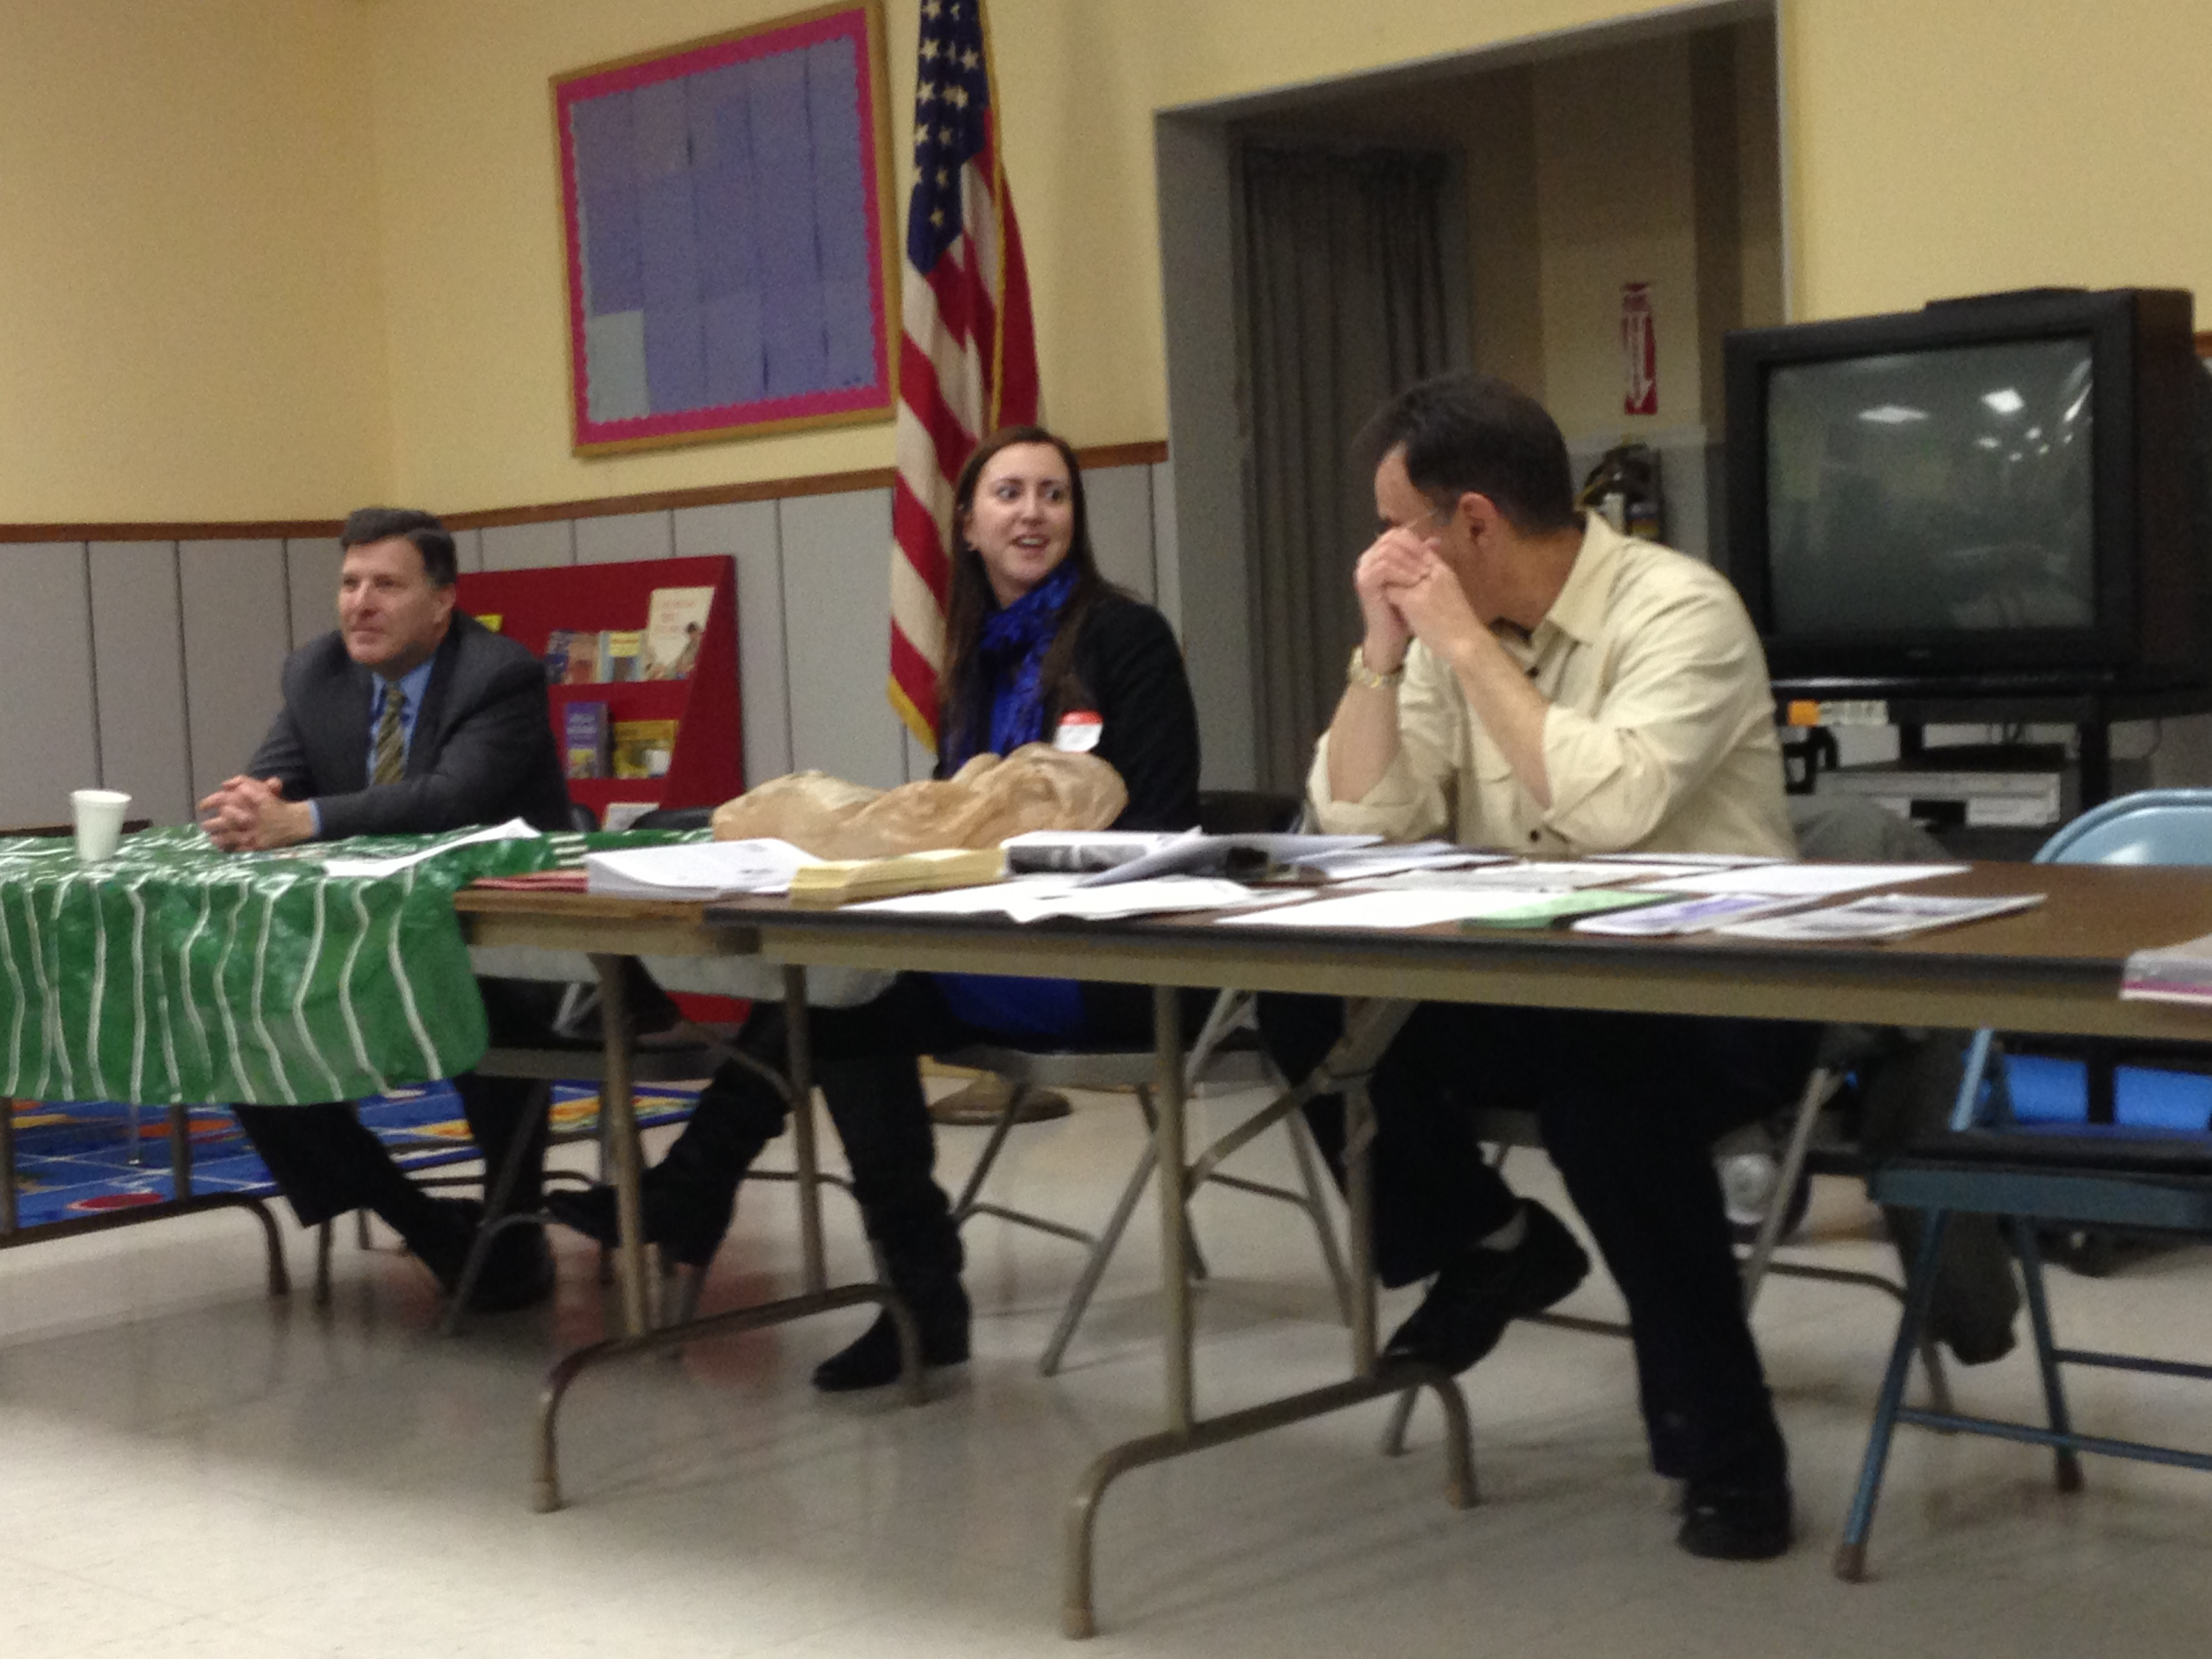 Assemblywoman Nily Rozic spoke to the Bayside Hills Civic Association about quality of life issues.